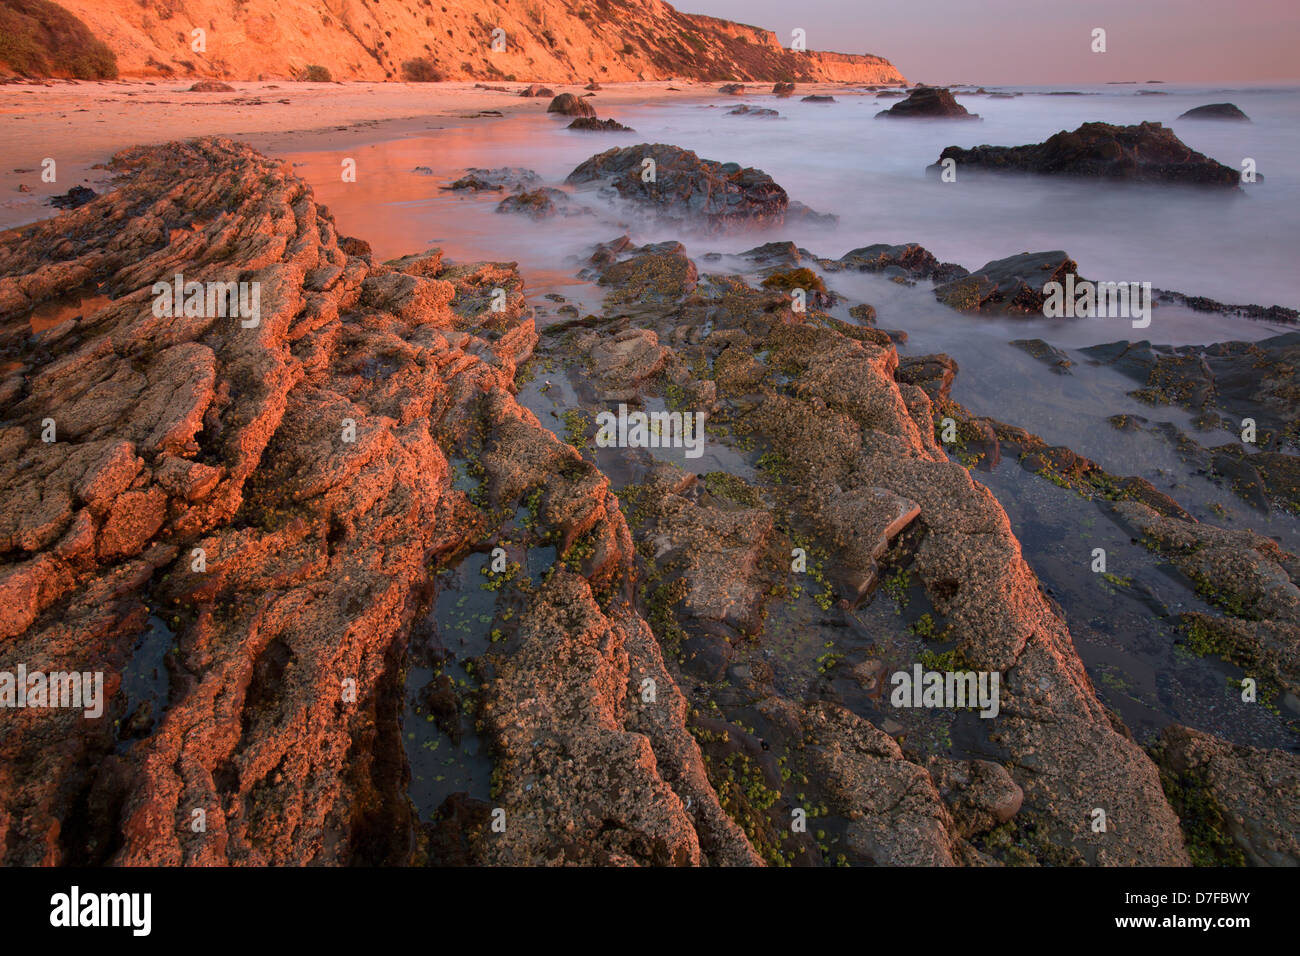 Sunset at Crystal Cove State Park, Newport Beach, Orange County, California. - Stock Image